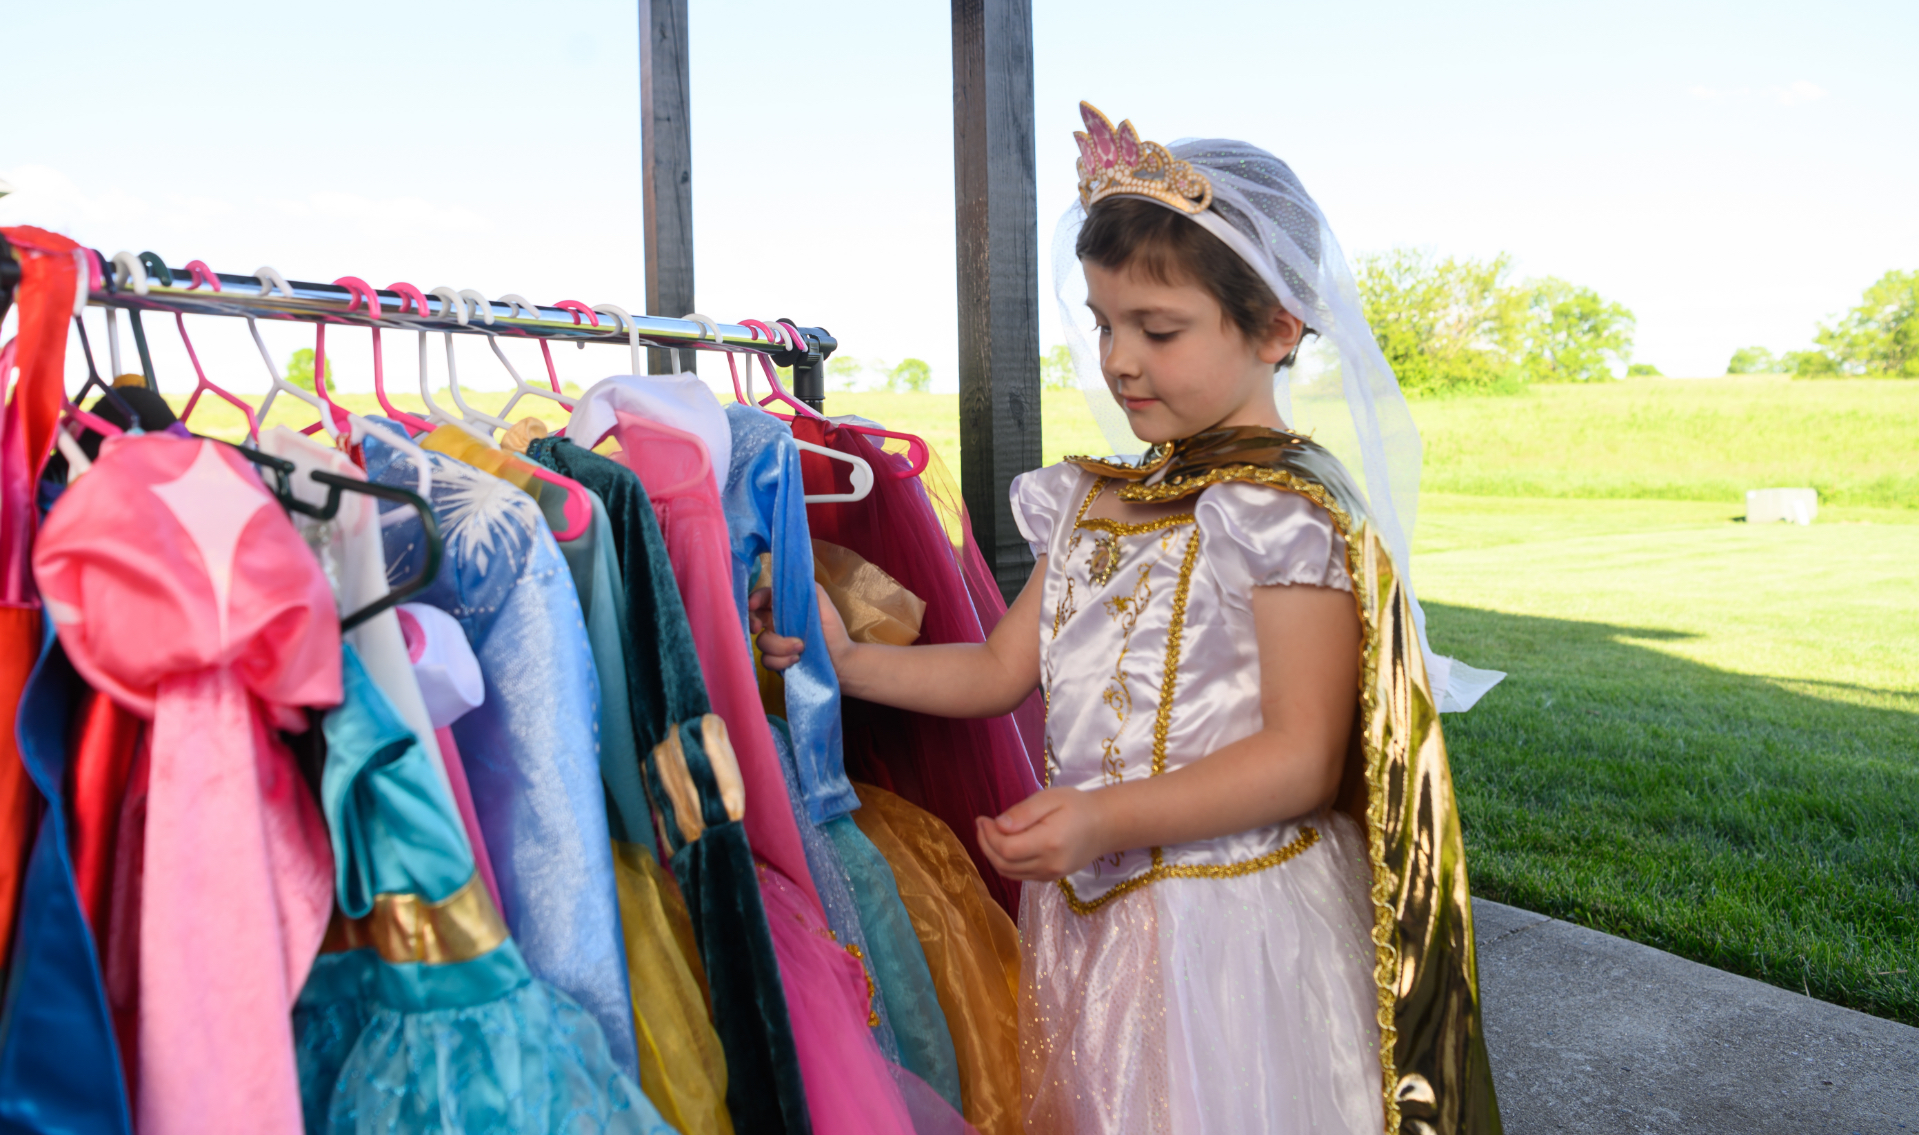 Leorah admires a rack of her costumes while wearing one herself.